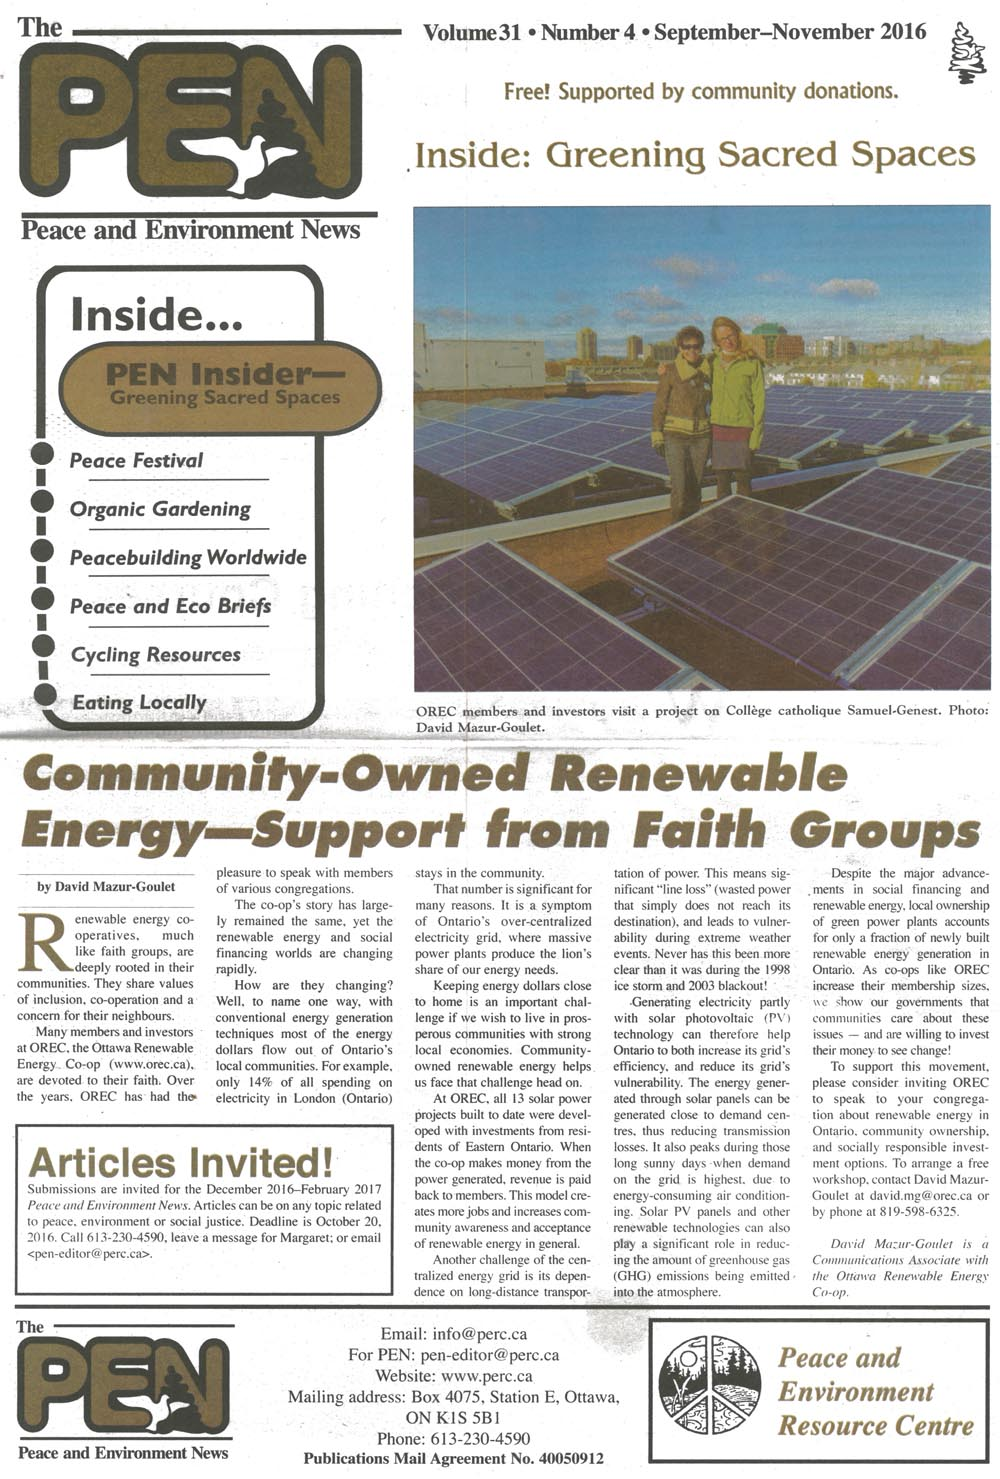 OREC's article in the PEN news